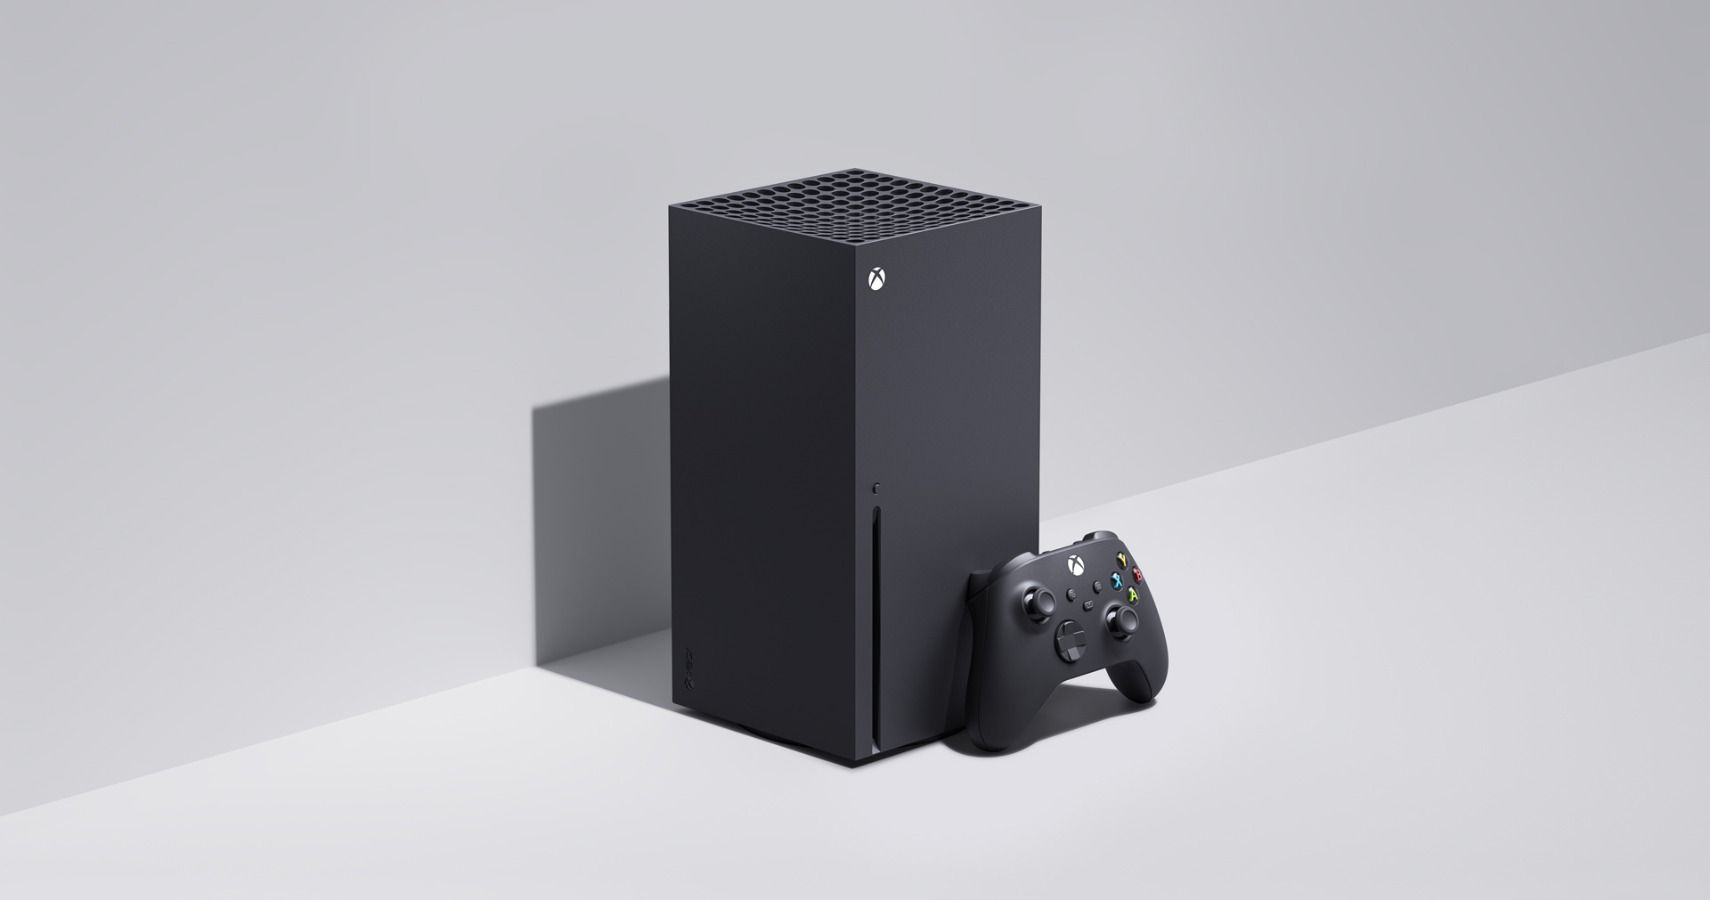 Xbox Series X Loads Games Up To 80% Faster Than Xbox One X